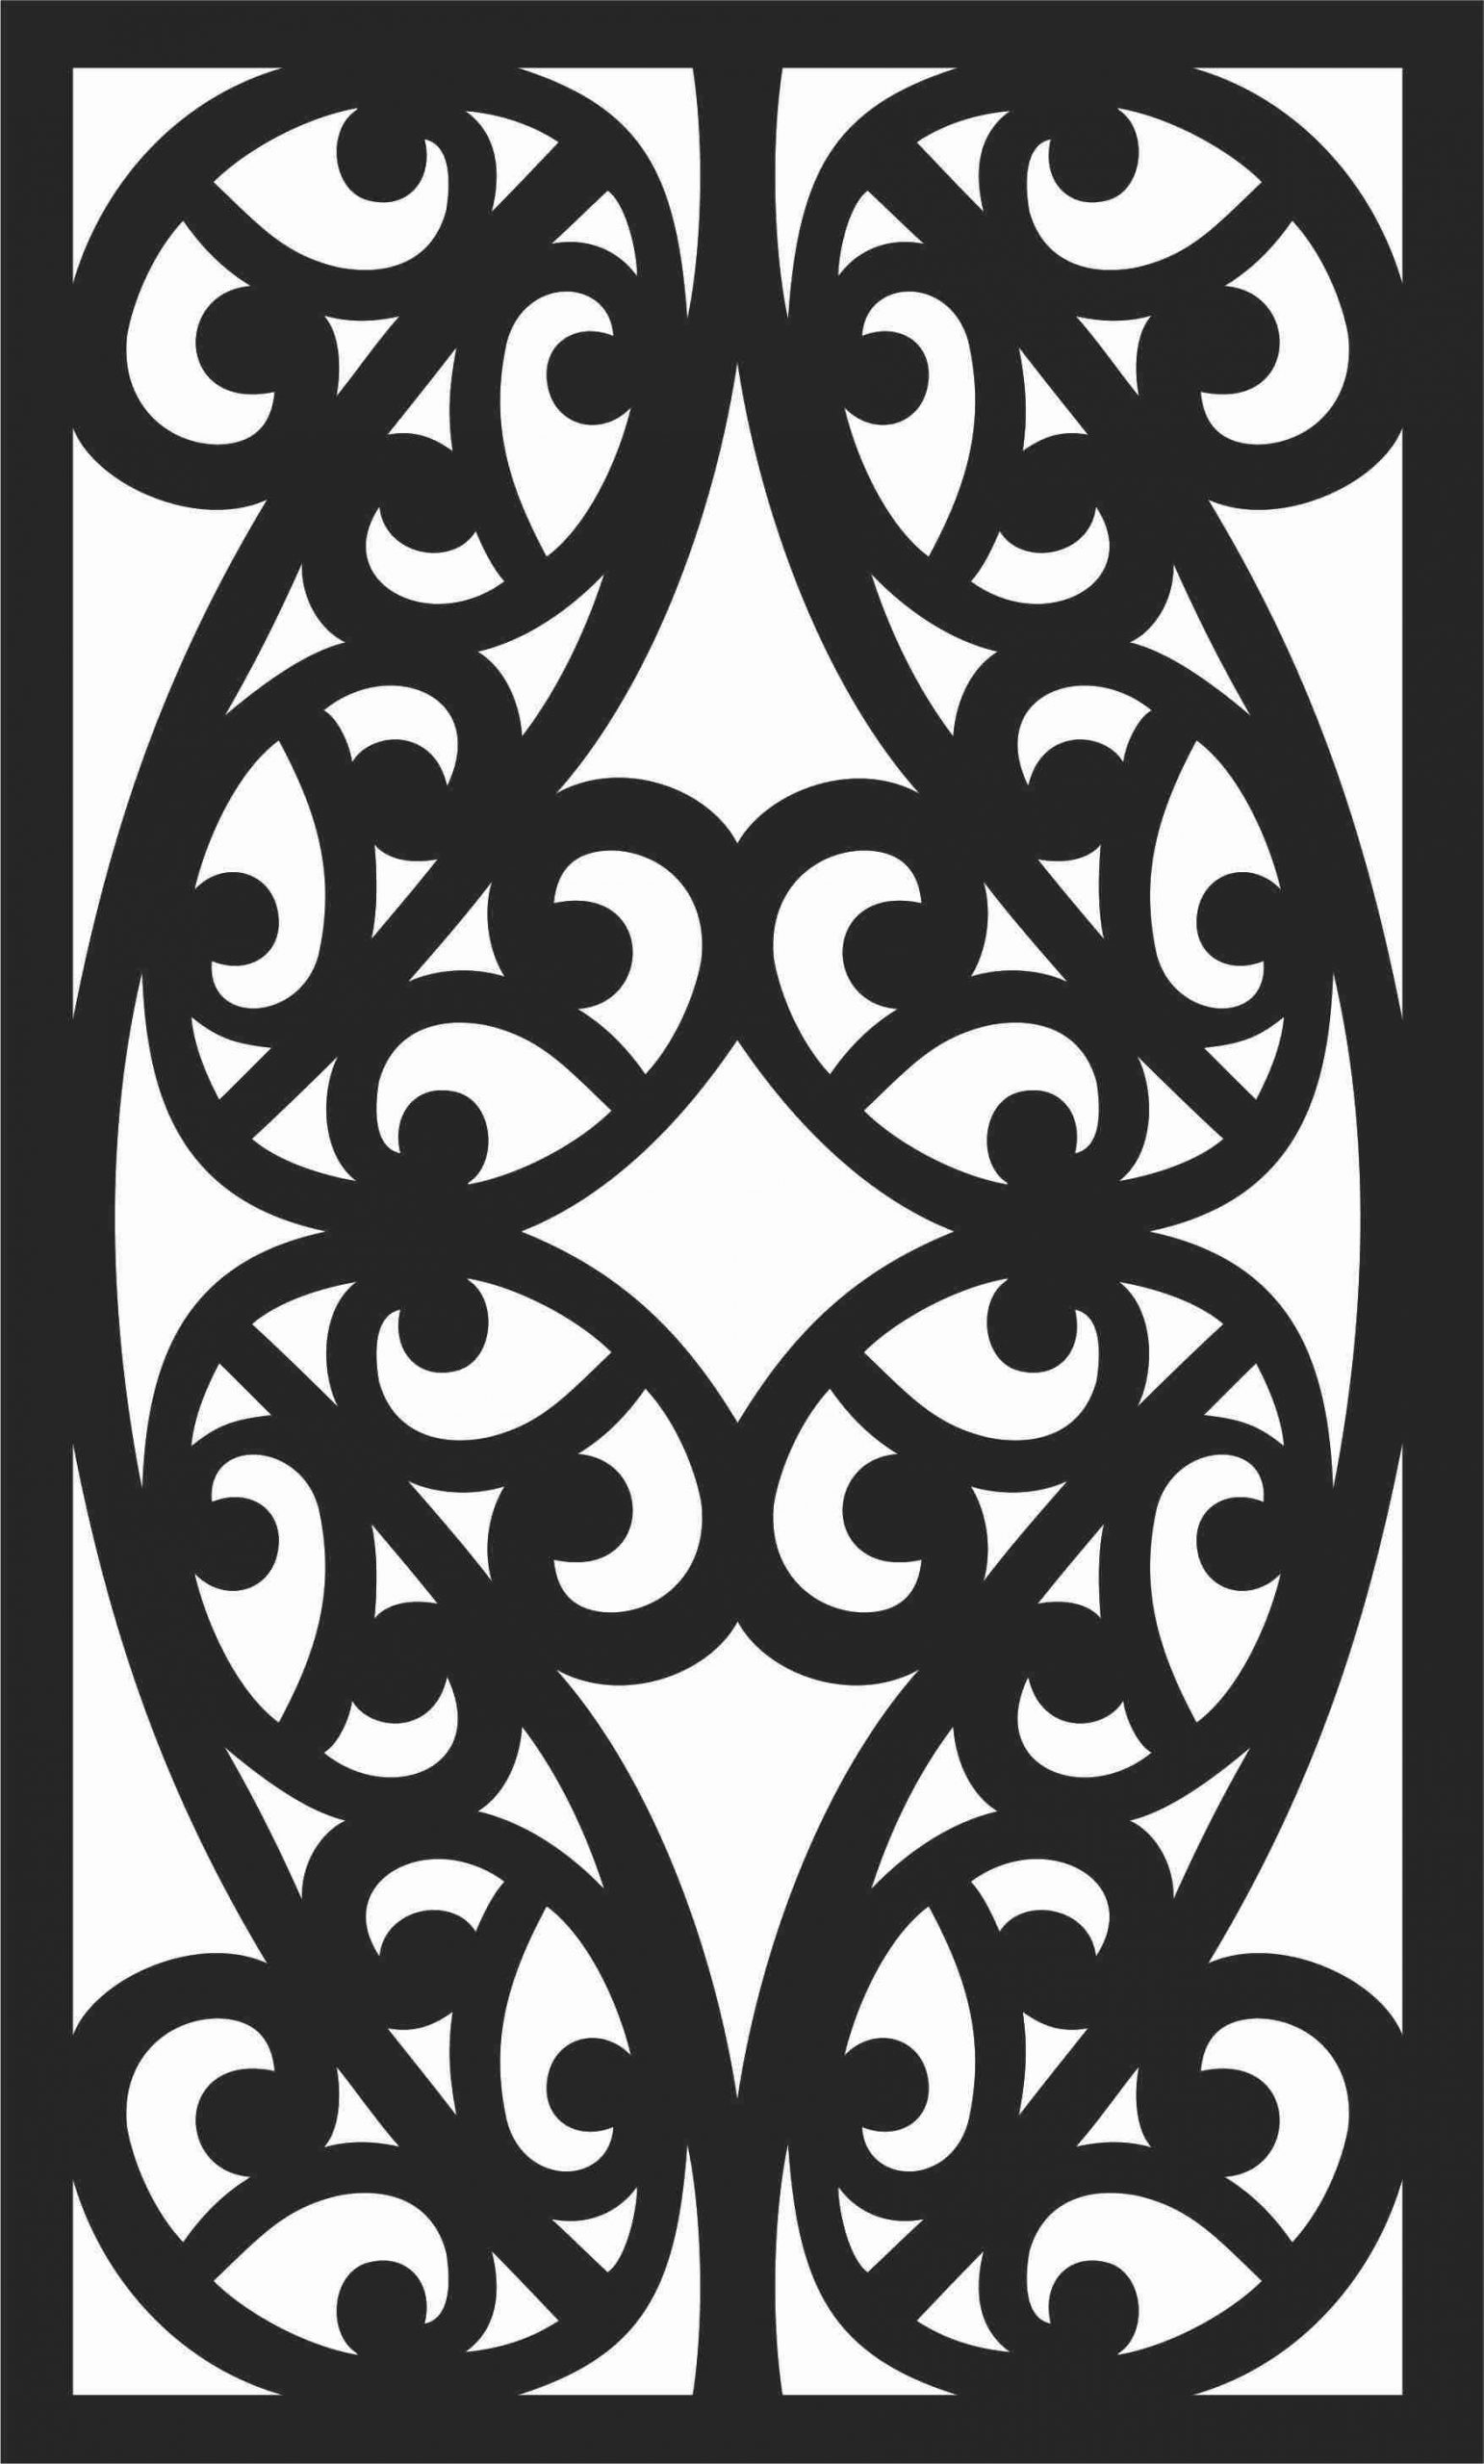 Floral Screen Patterns Design 28 Free DXF File